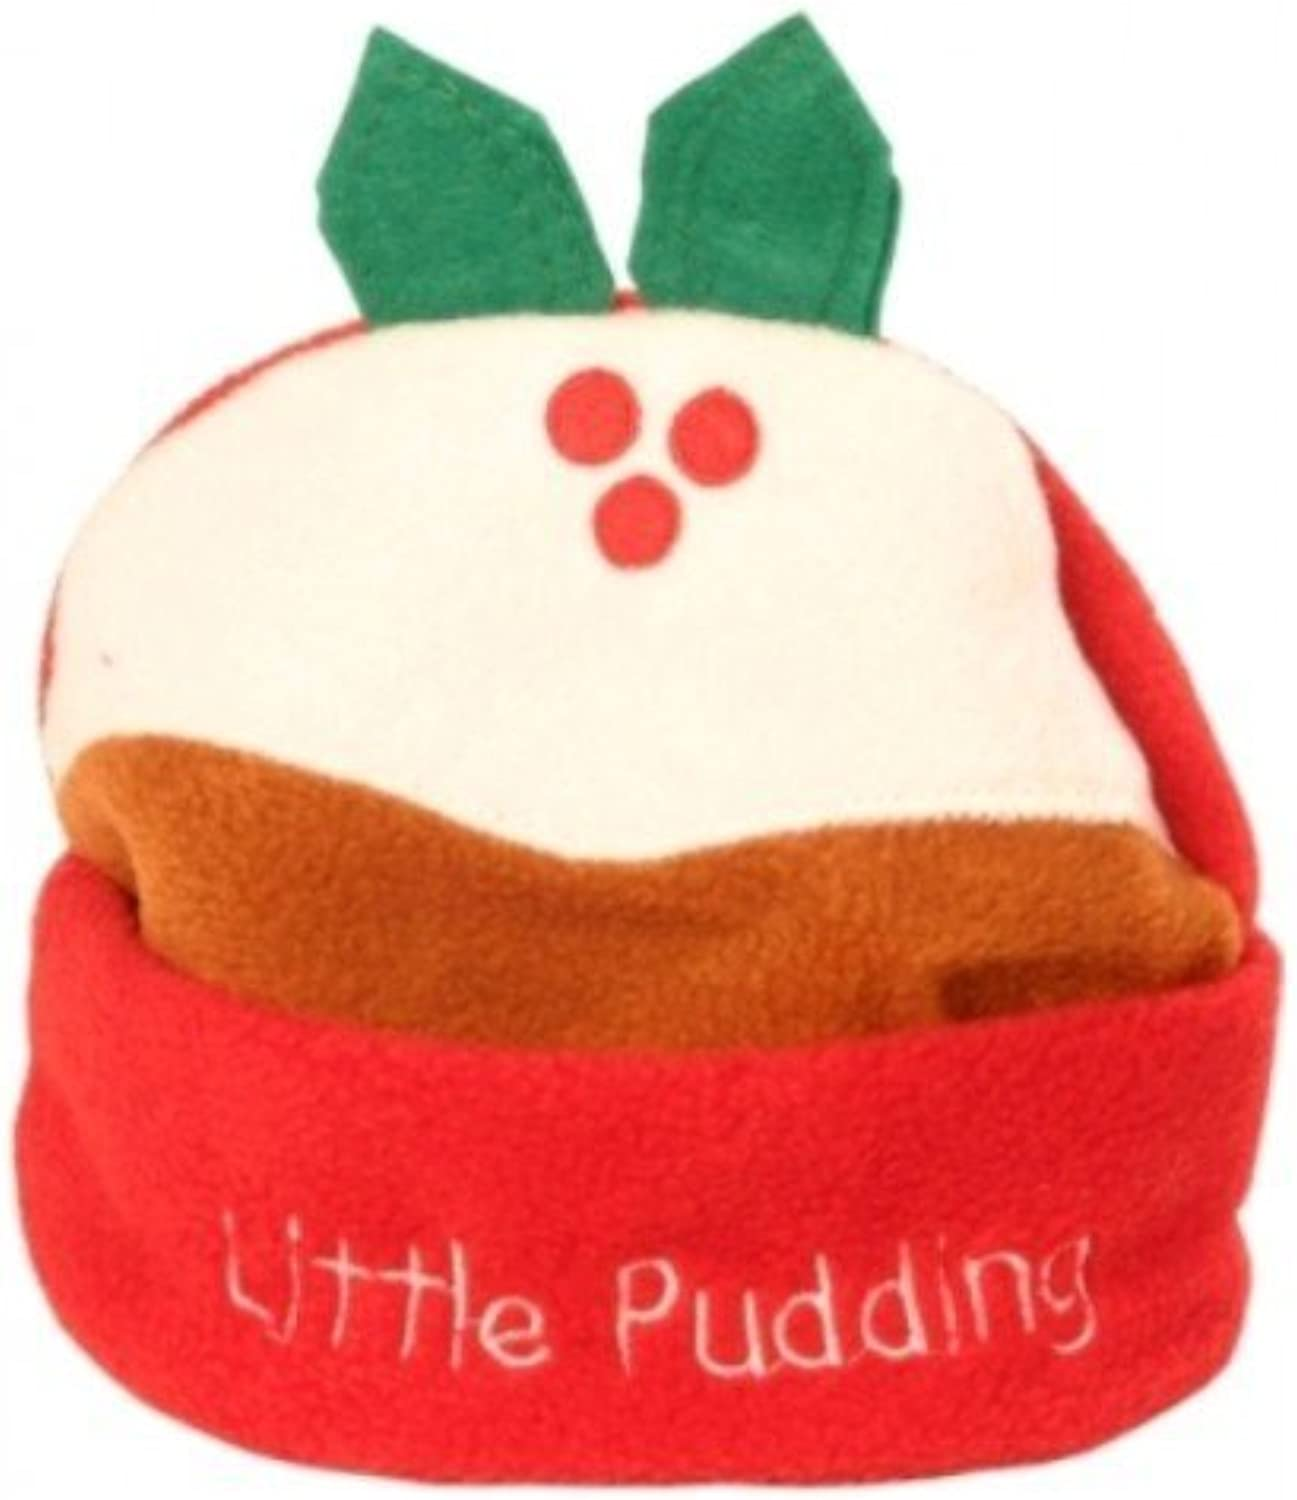 Little Pudding Hat Fleece with Embro by CC